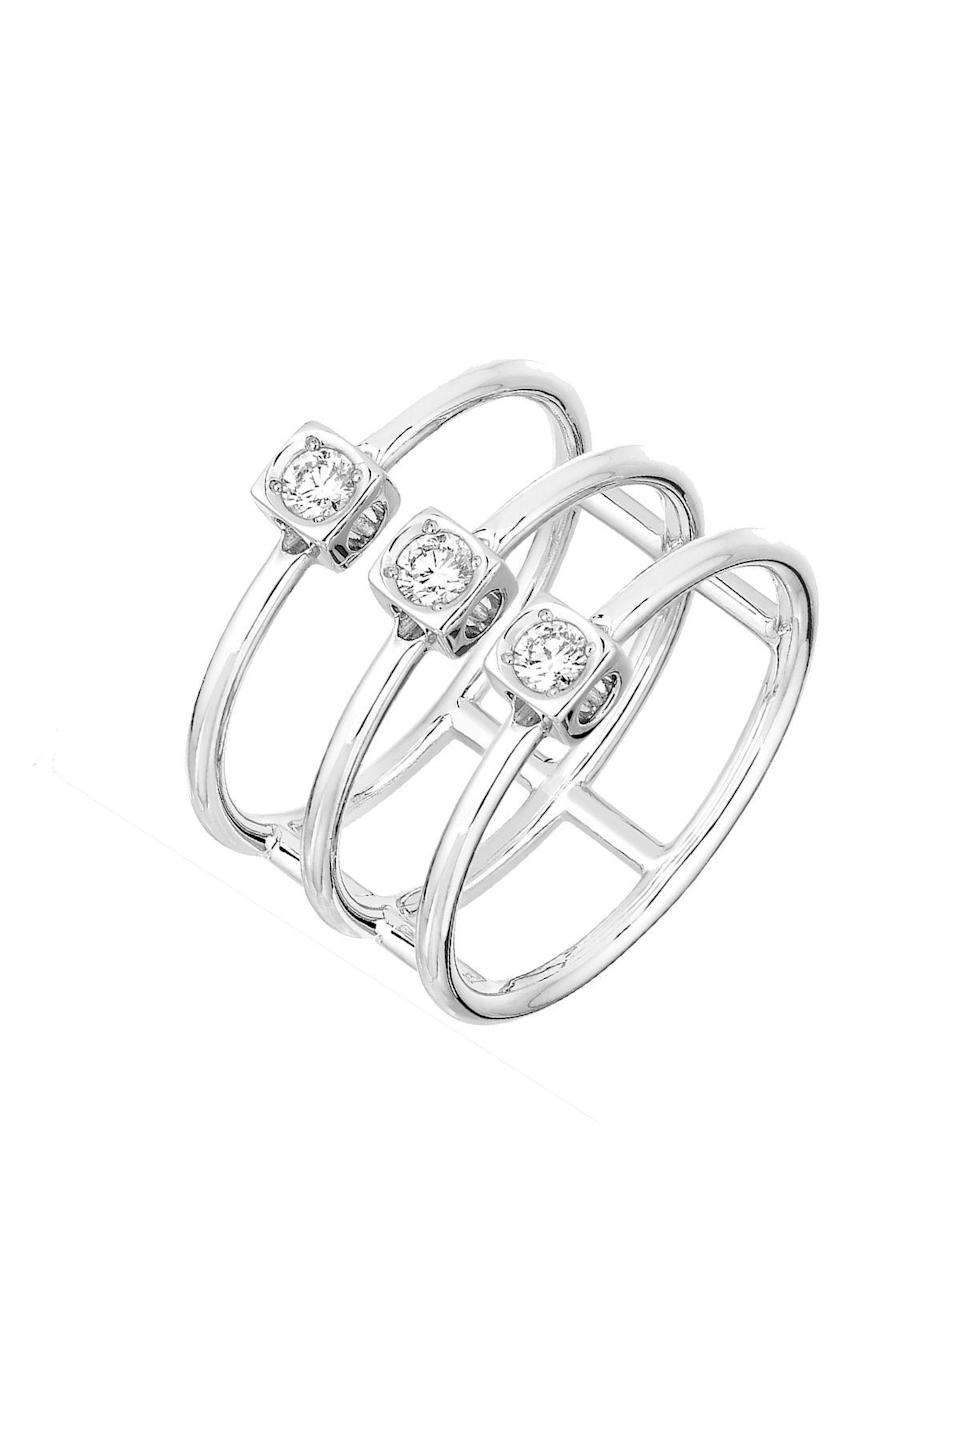 """<p><strong>Dinh Van</strong></p><p>dinhvan.com</p><p><strong>$2420.00</strong></p><p><a href=""""https://www.dinhvan.com/en_us/le-cube-diamant-ring-208612.html"""" rel=""""nofollow noopener"""" target=""""_blank"""" data-ylk=""""slk:Shop Now"""" class=""""link rapid-noclick-resp"""">Shop Now</a></p><p>Minimalist definitely doesn't mean boring with this ring. The white gold setting is open on the sides to showcase the diamonds' best angles (that is, all of them). </p>"""